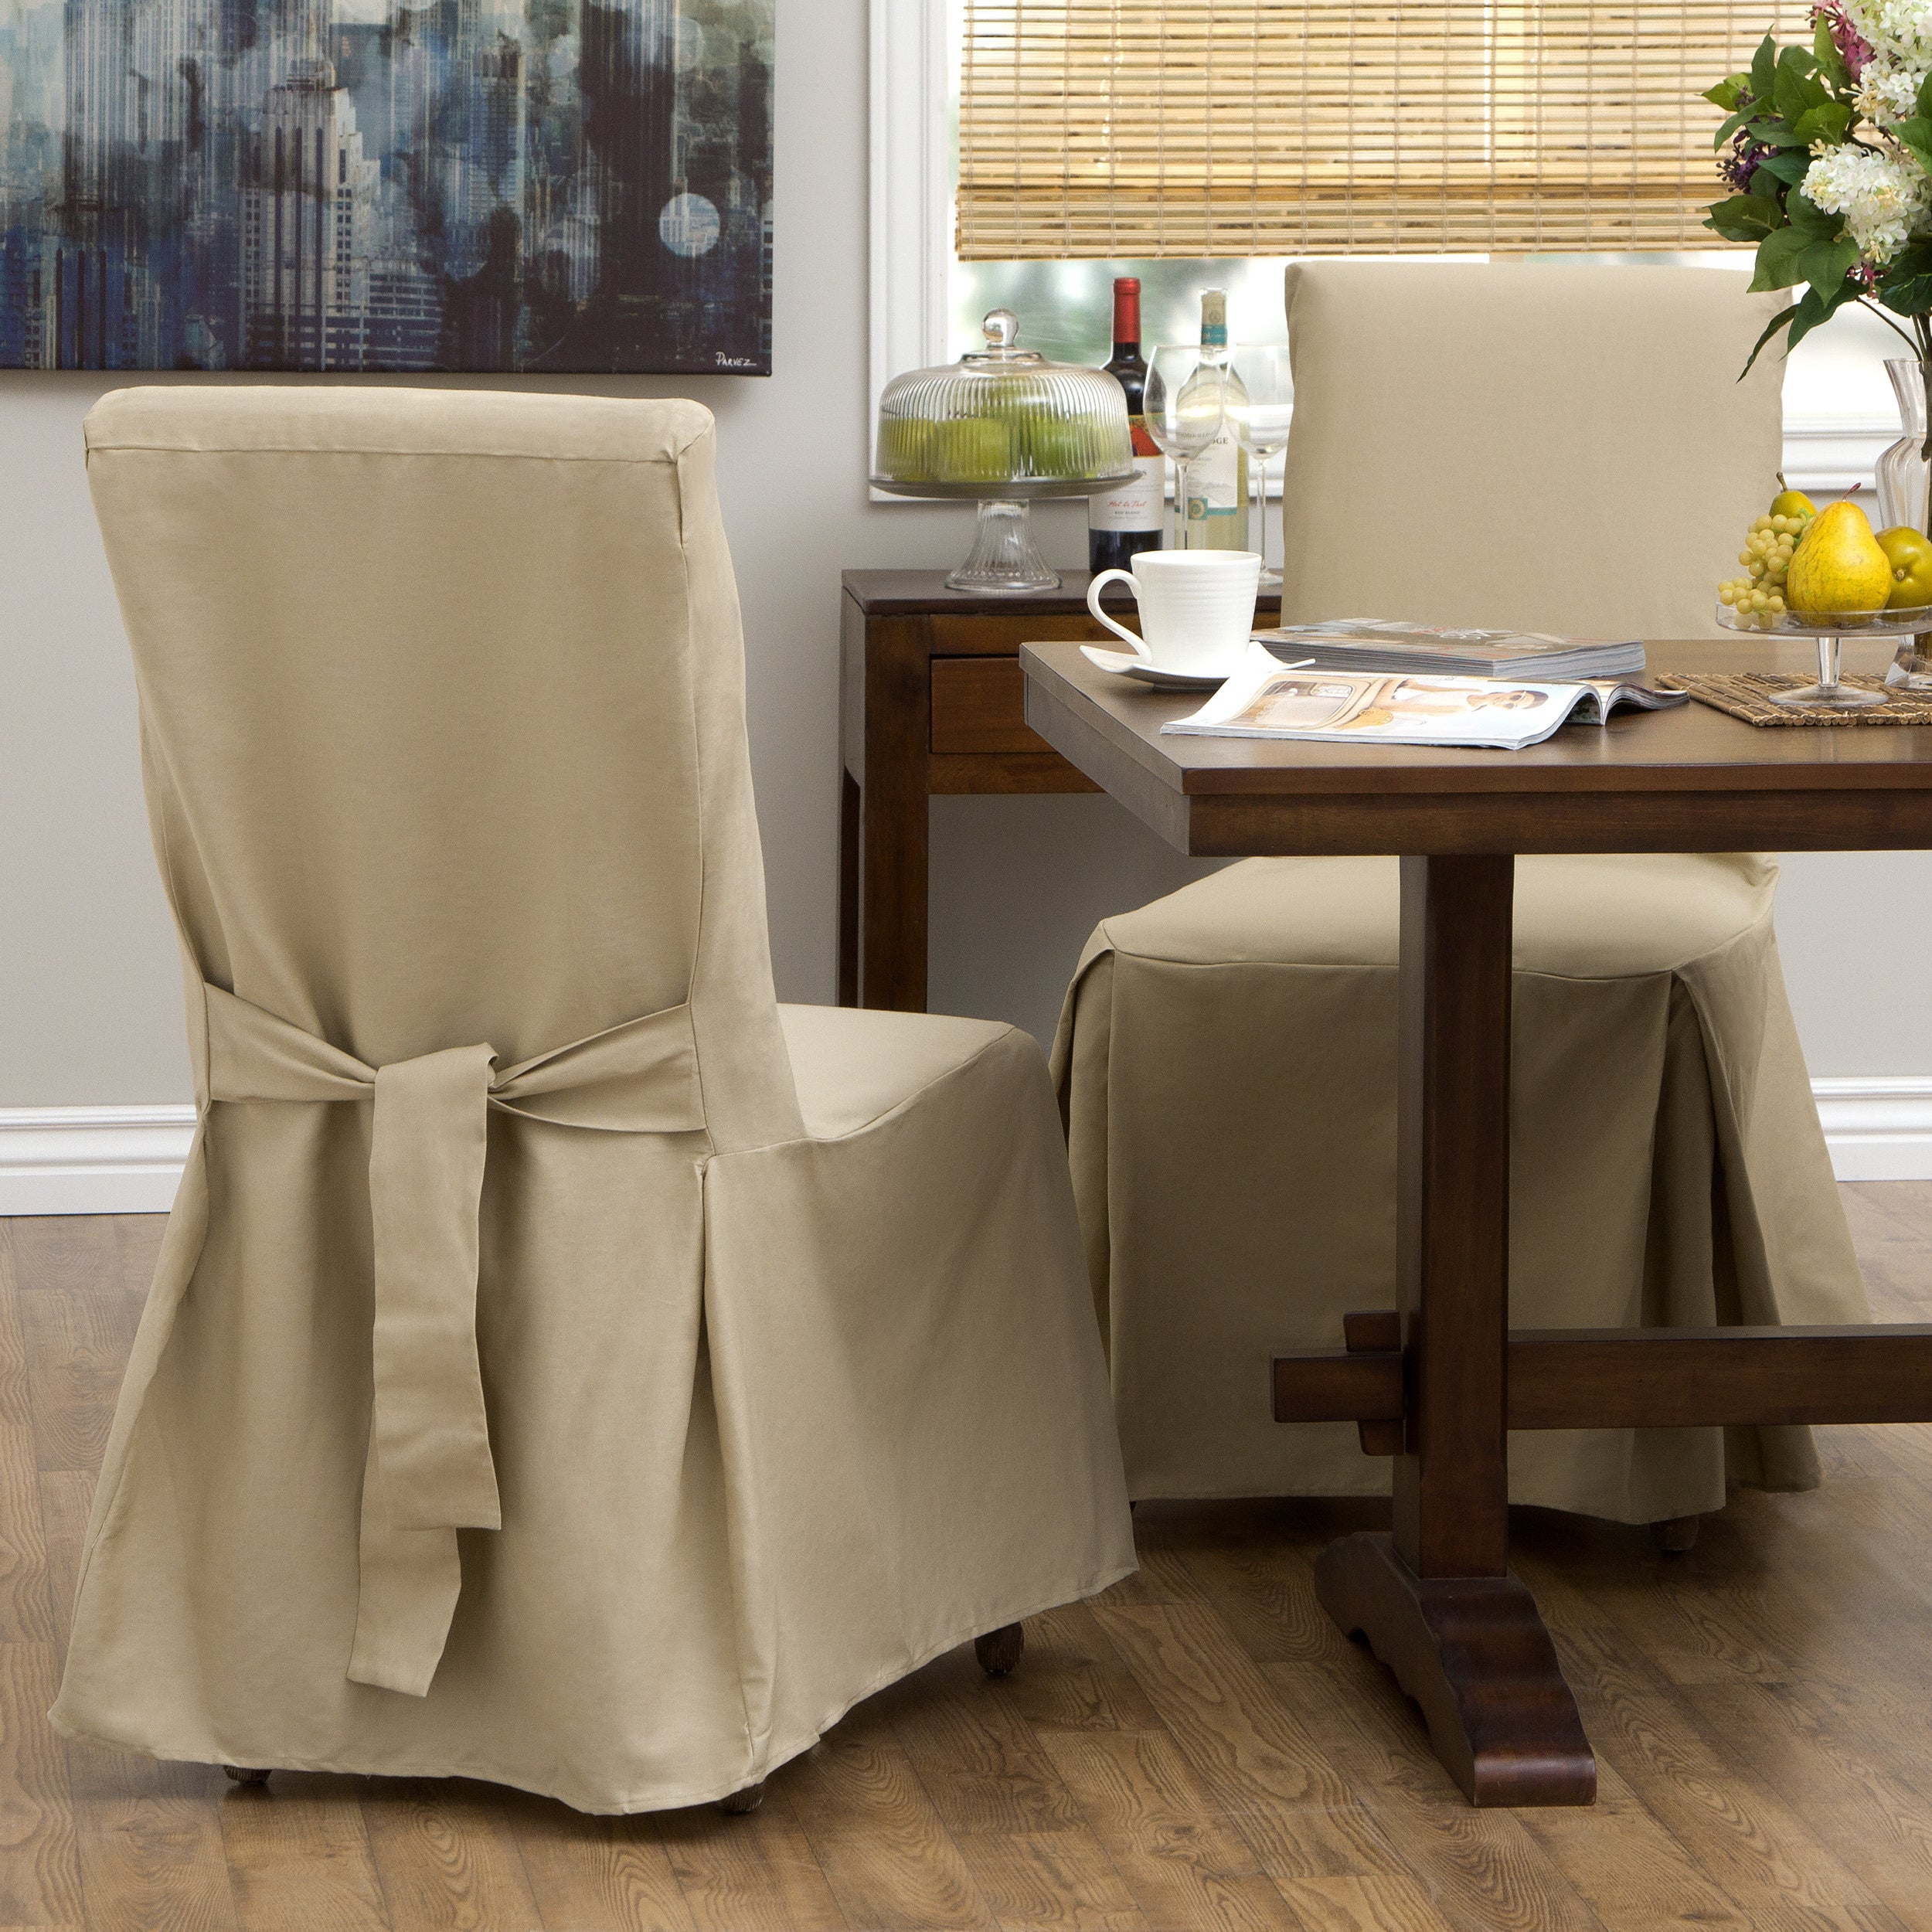 cushion chairs target skirt office slipcover gallery parson curtain interior canada for kitchen picture covers parsons cushions with outstanding dining chair seat impressive room